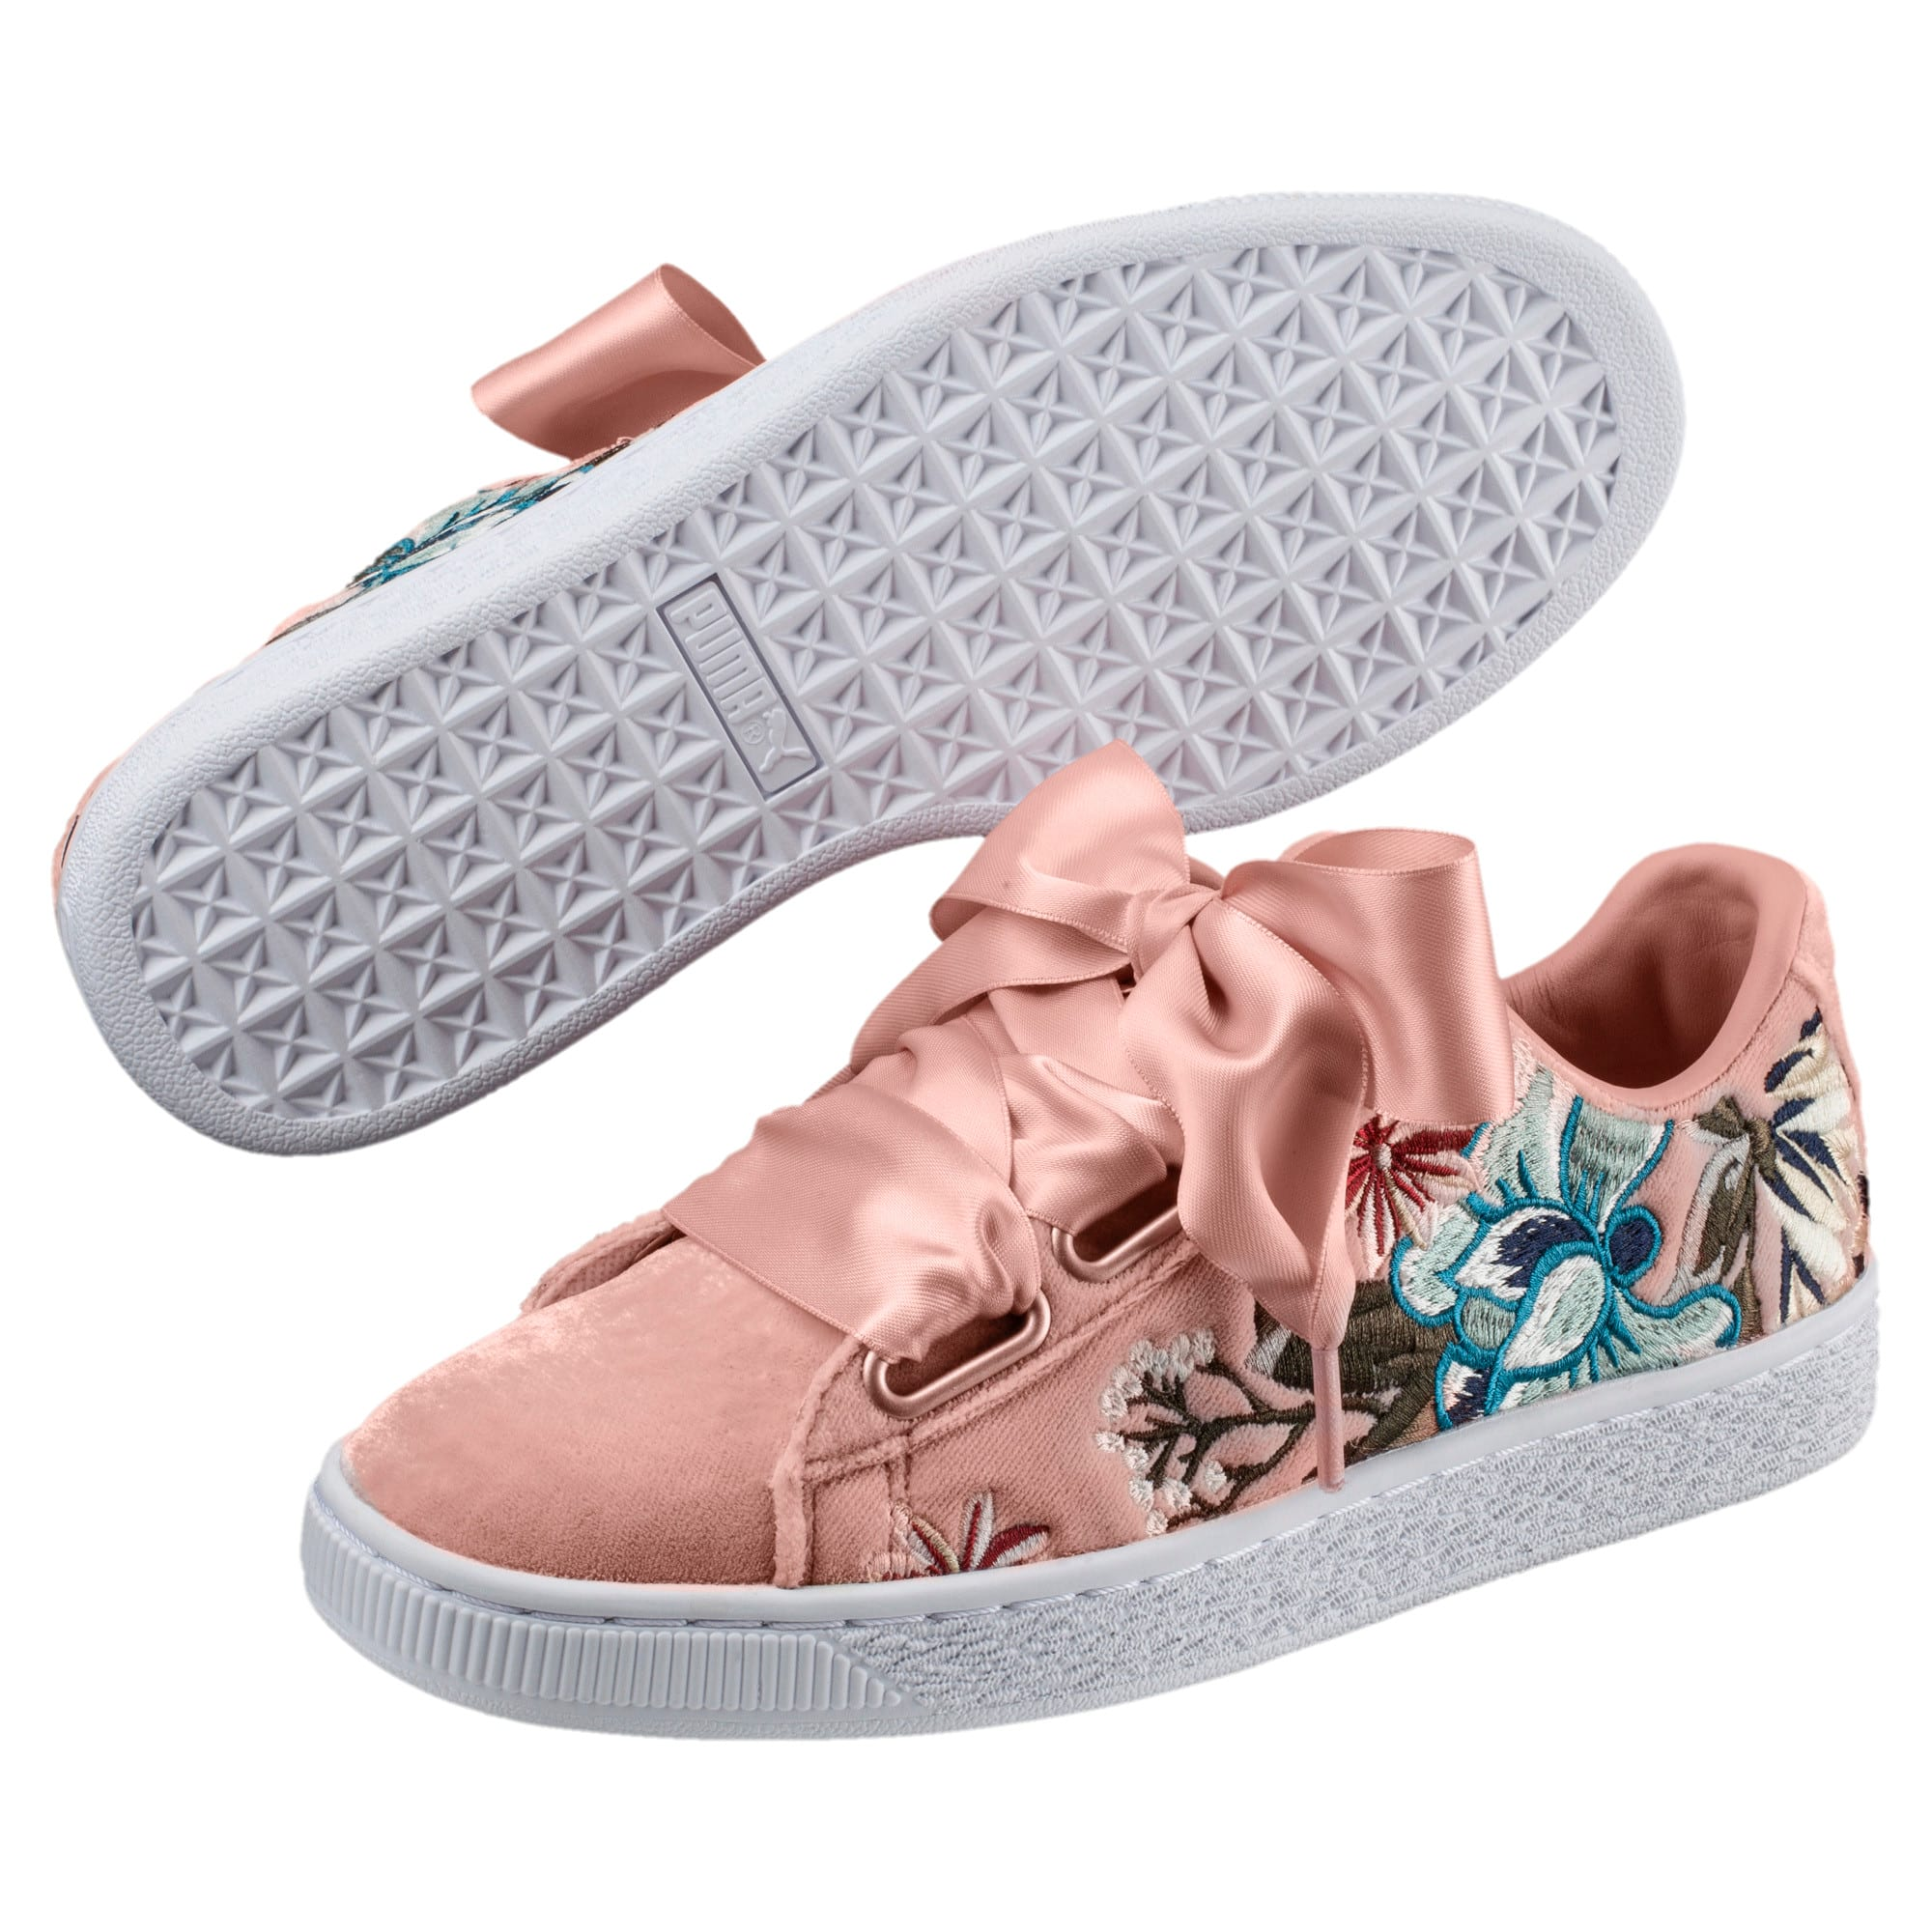 Thumbnail 2 of Basket Heart Hyper Embroidery Women's Trainers, Peach Beige, medium-IND